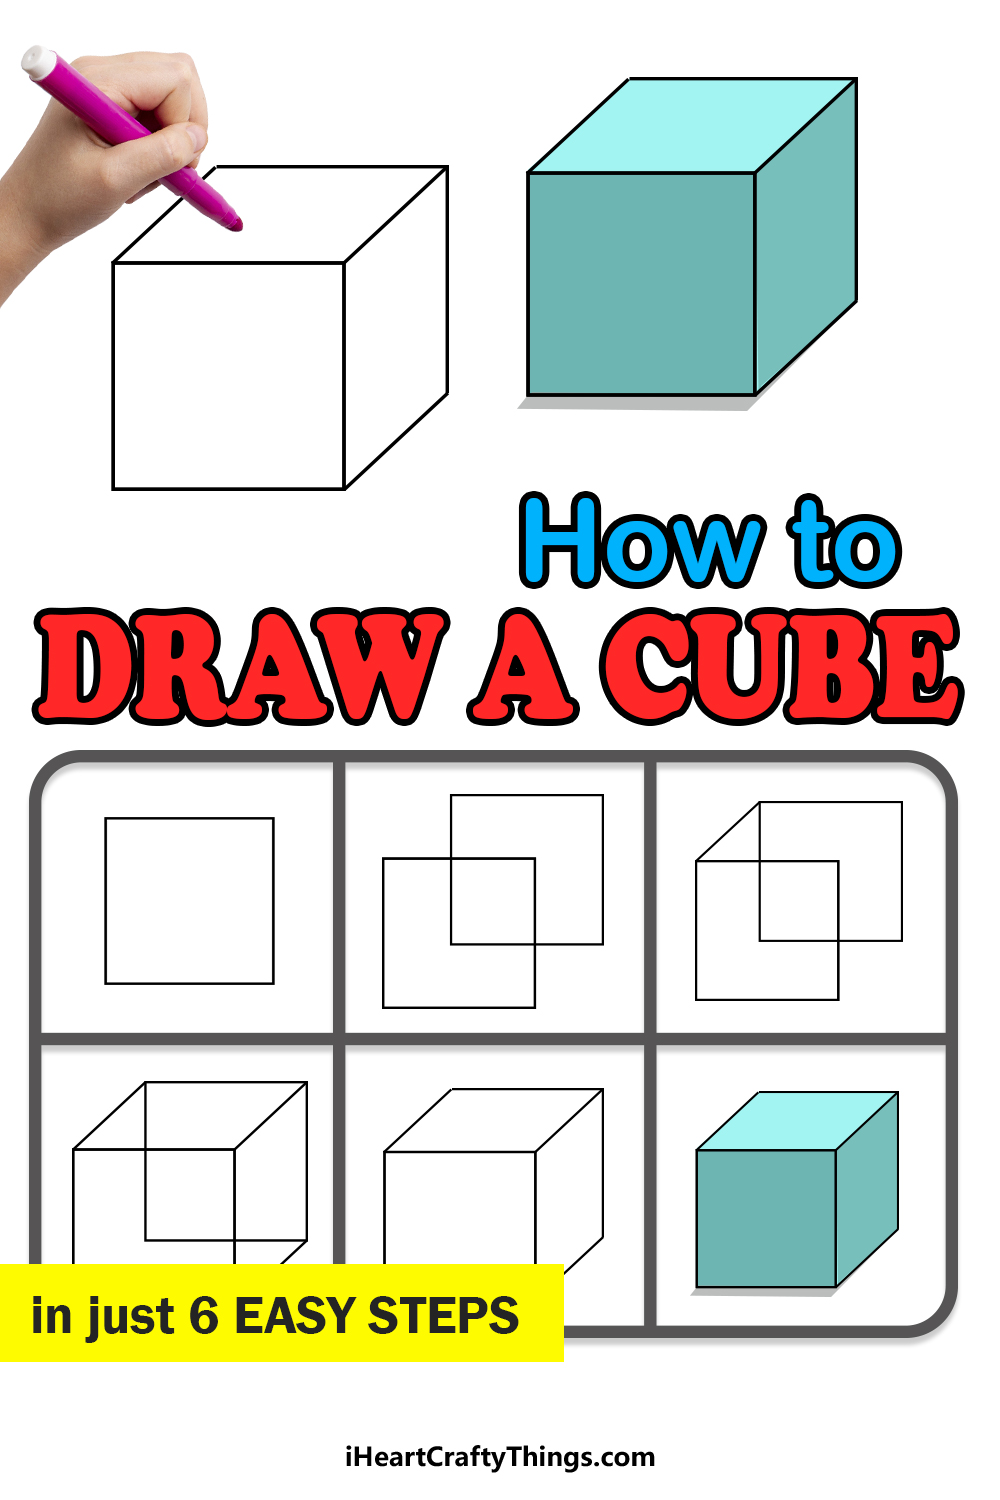 how to draw a cube in 6 easy steps